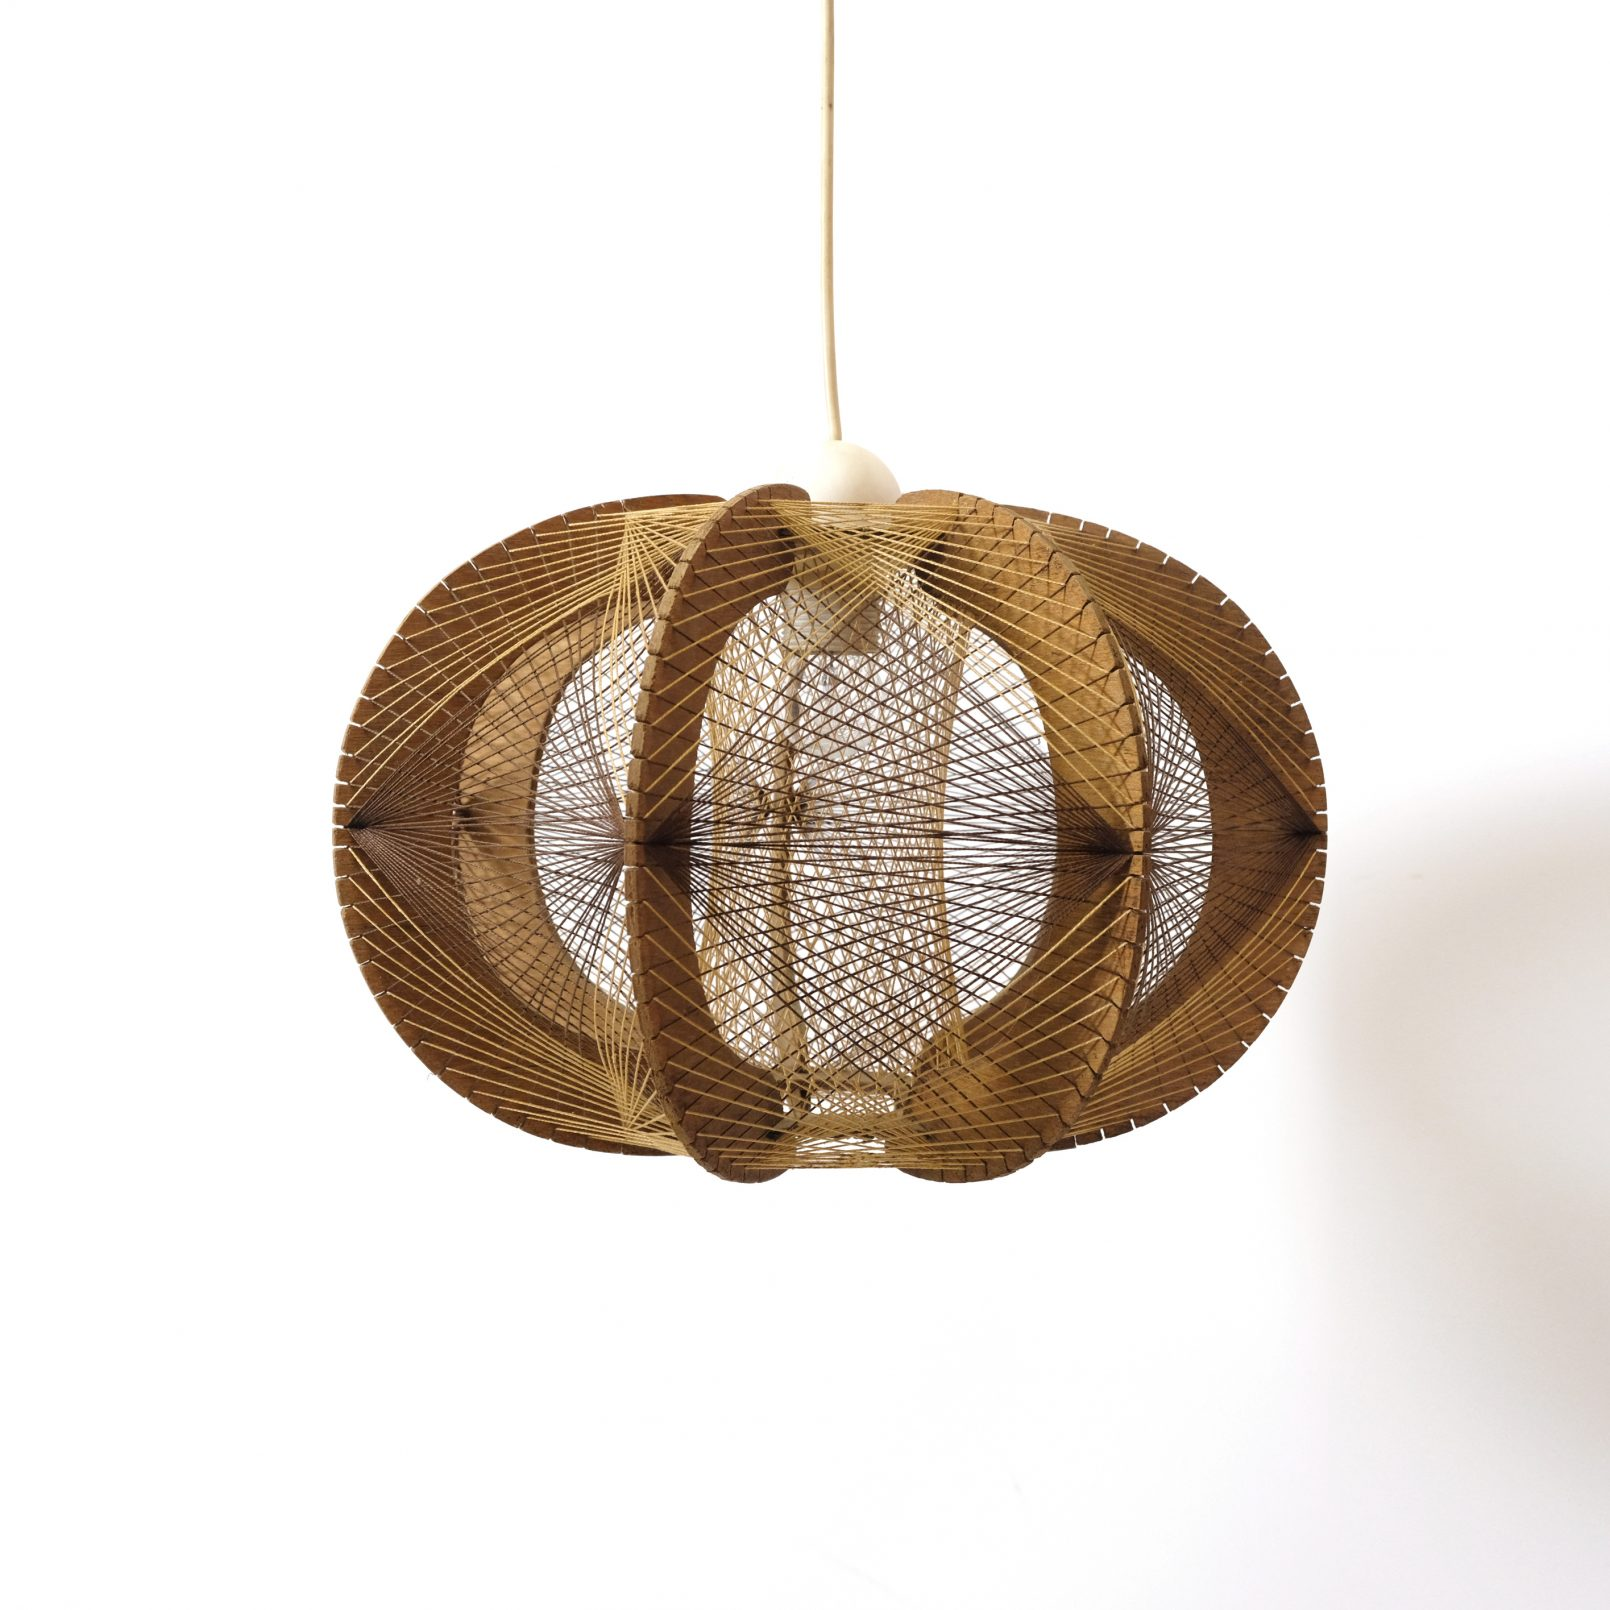 French hanging lamp made of wood and string, 1960s-1970s.